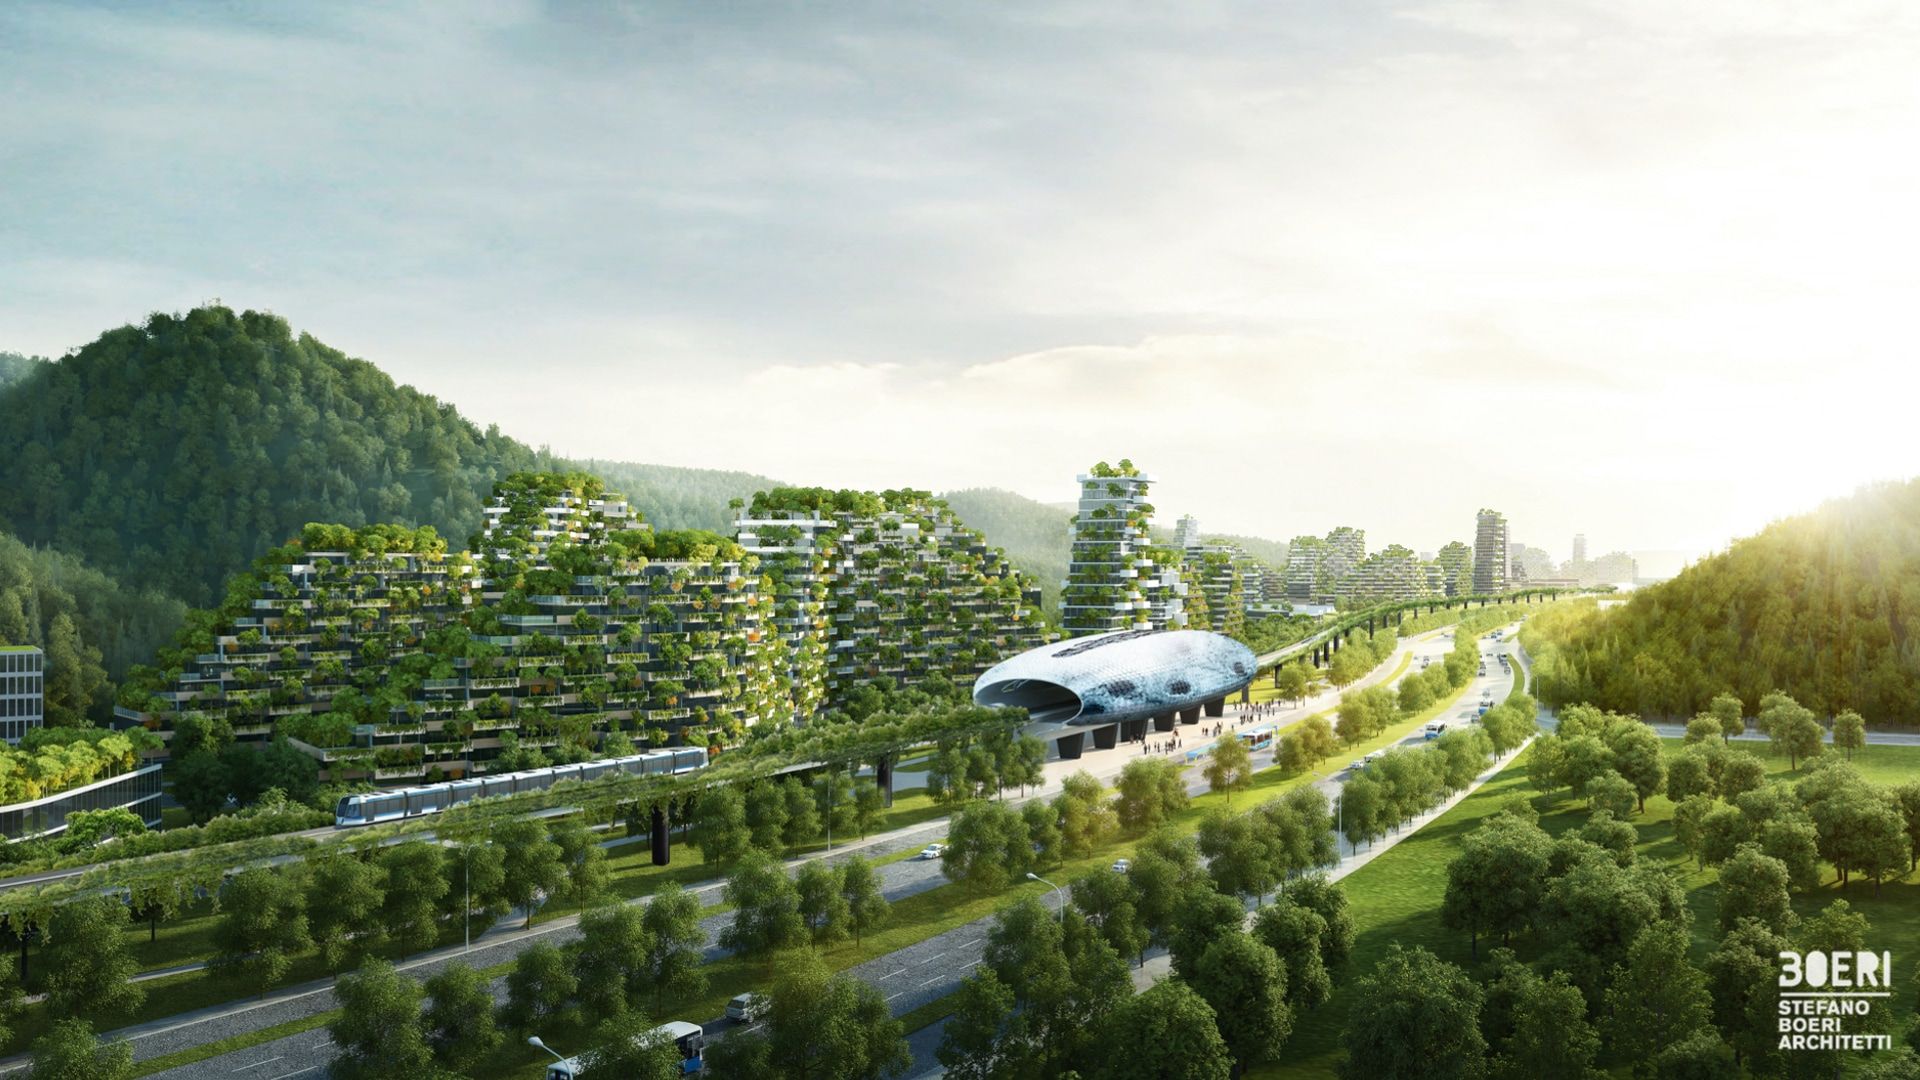 With Liuzhou Forest City in China, architect Stefano Boeri is going a significant step further than vertical gardens. Here, an all-green city aims to accommodate a total of 30,000 inhabitants and eliminate 10,000 tons of CO₂ annually.